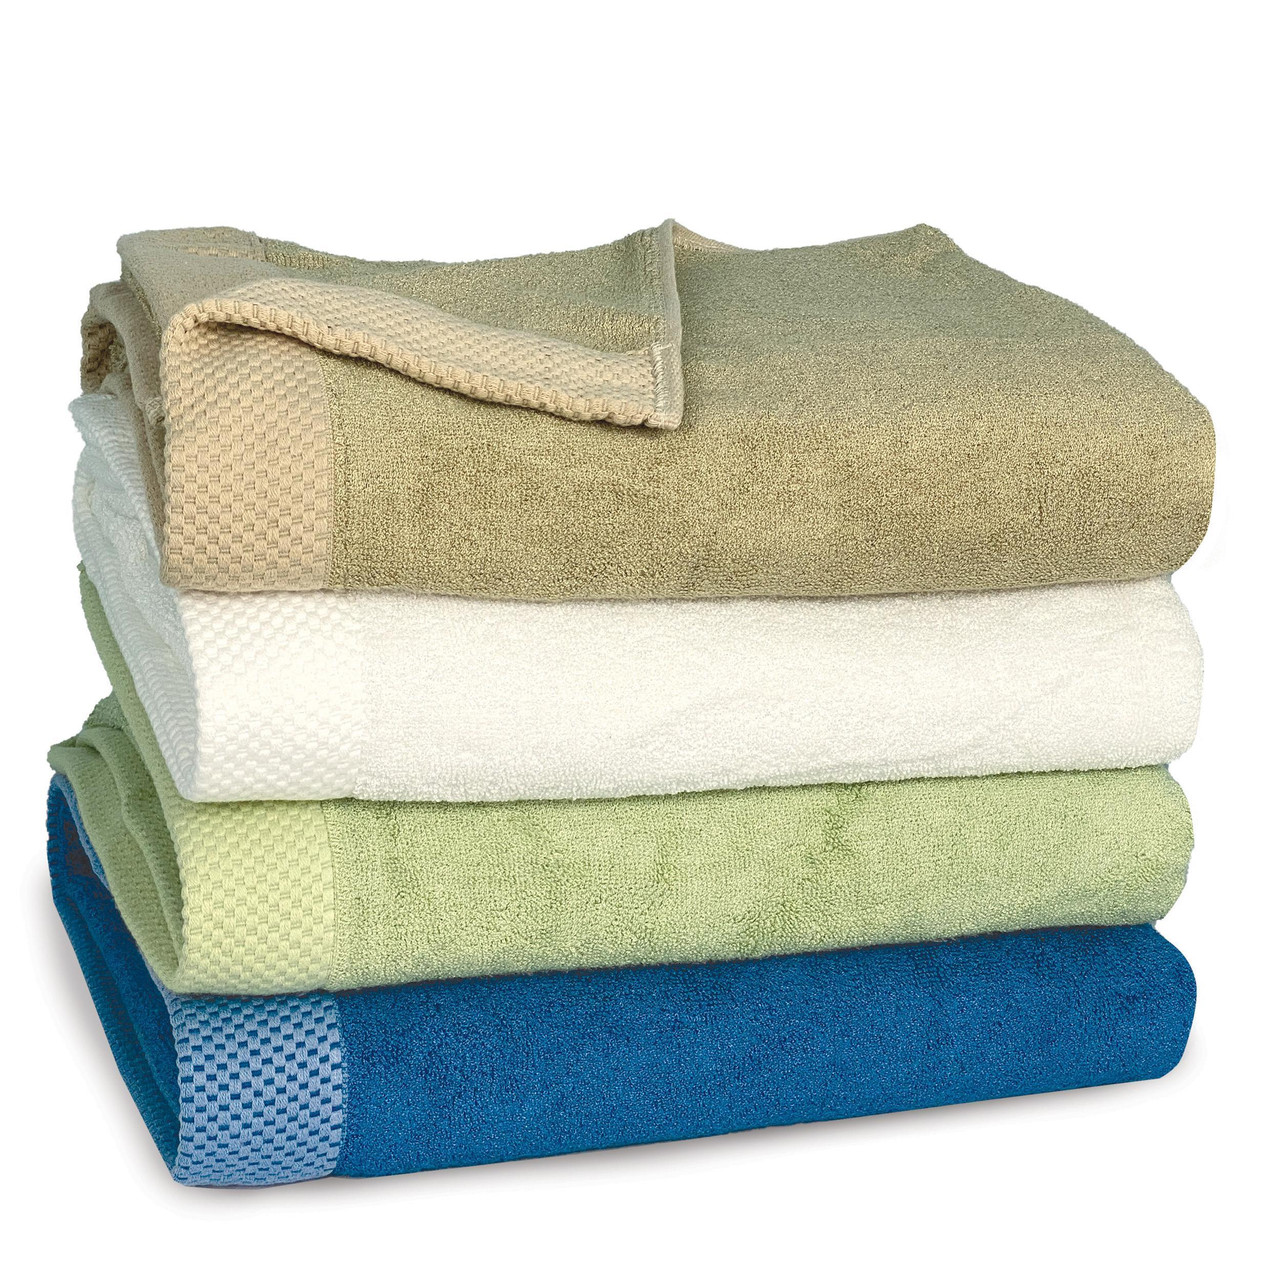 Buy Luxury Bamboo Towel Sets From Bedvoyage Blankets Com